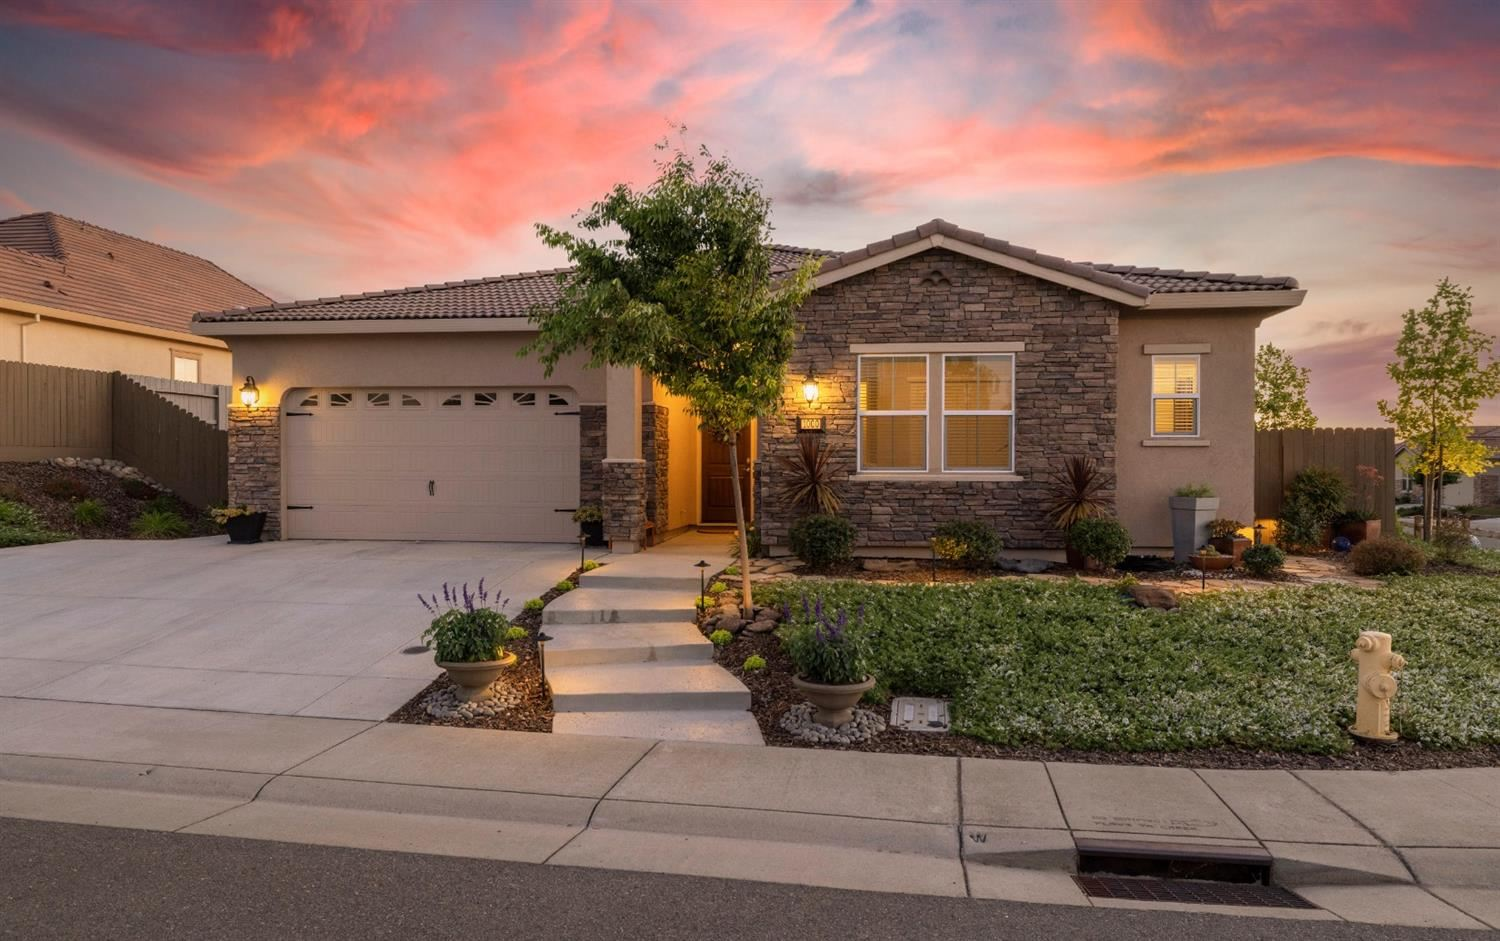 Photo of 1000 Limpkin Court, Lincoln, CA 95648 (MLS # 221049793)